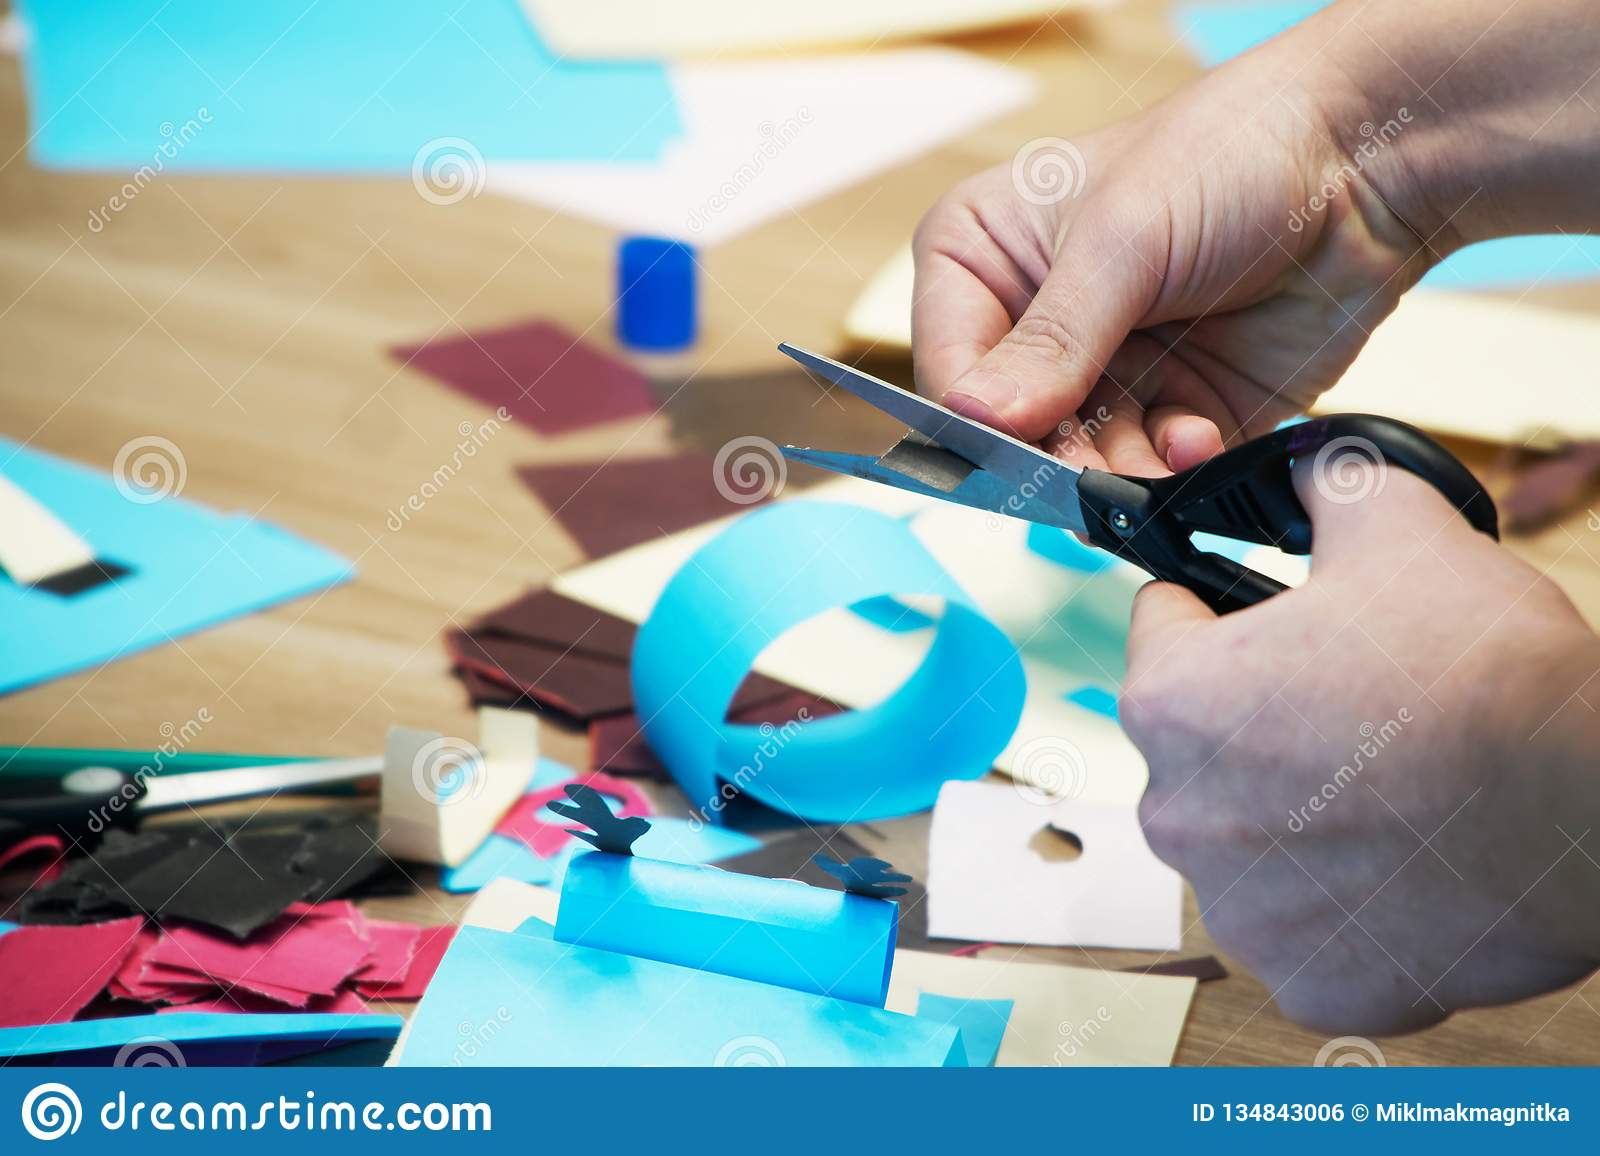 Cut with scissors colored paper and do crafts. Scrapbooking and other hobbies